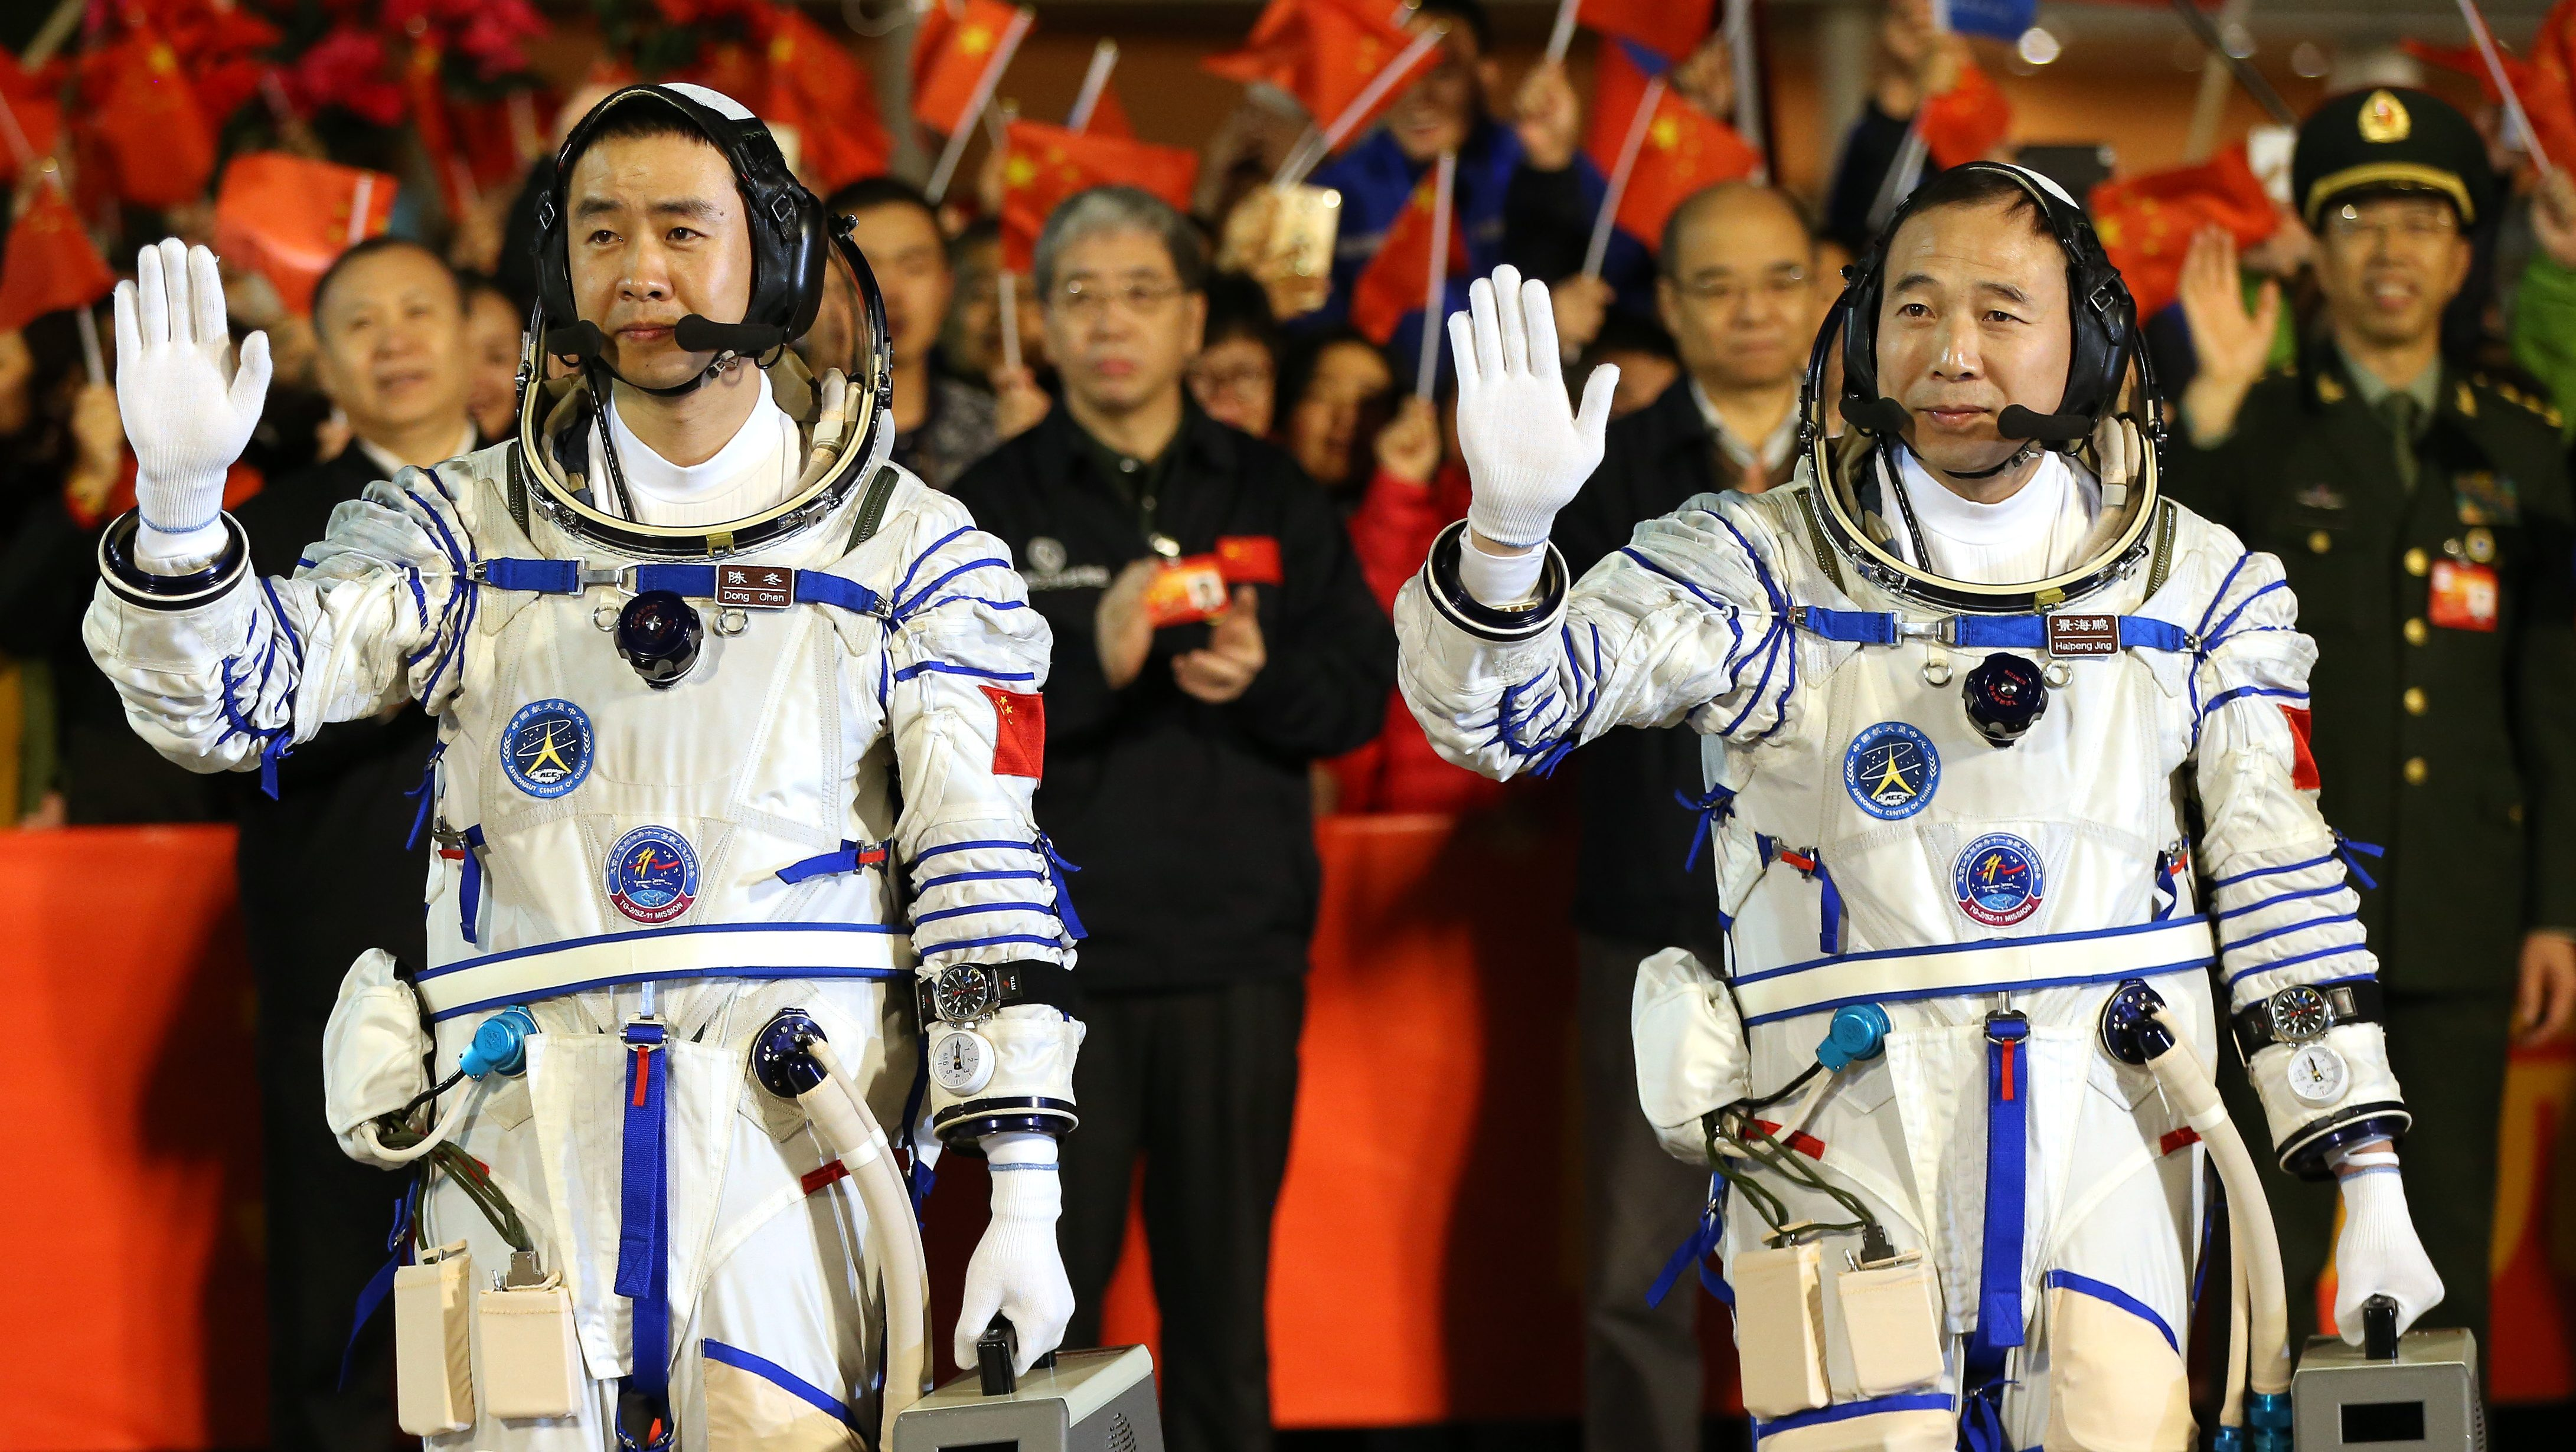 epa05588314 Chinese astronauts Jin Haipeng (L) and Chen Dong wave during a farewell ceremony before the launch of the Shenzhou-11 spacecraft at the Jiuquan Satellite Launch Center in Jiuquan, Gansu province, China, 17 October 2016. China launched the Shenzhou-11 spacecraft carrying two crew members into orbit to dock with the Tiangong-2 space lab on a 30-day mission.  EPA/HOW HWEE YOUNG